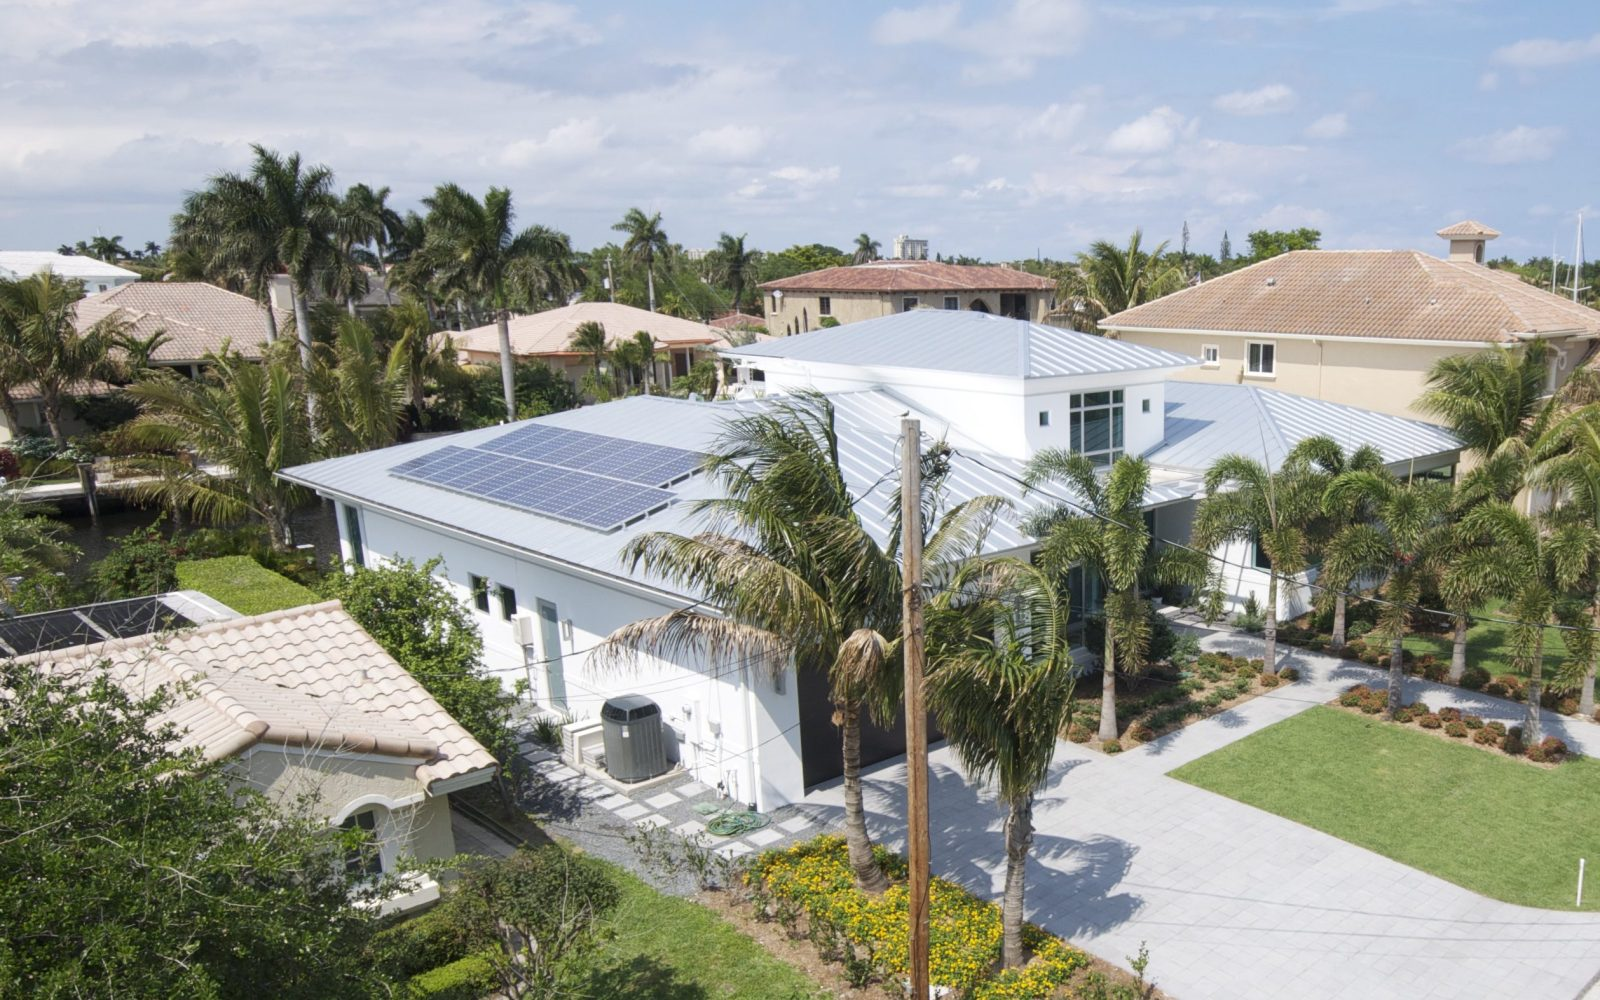 Tesla's SolarCity announces expansion in Florida after long battle